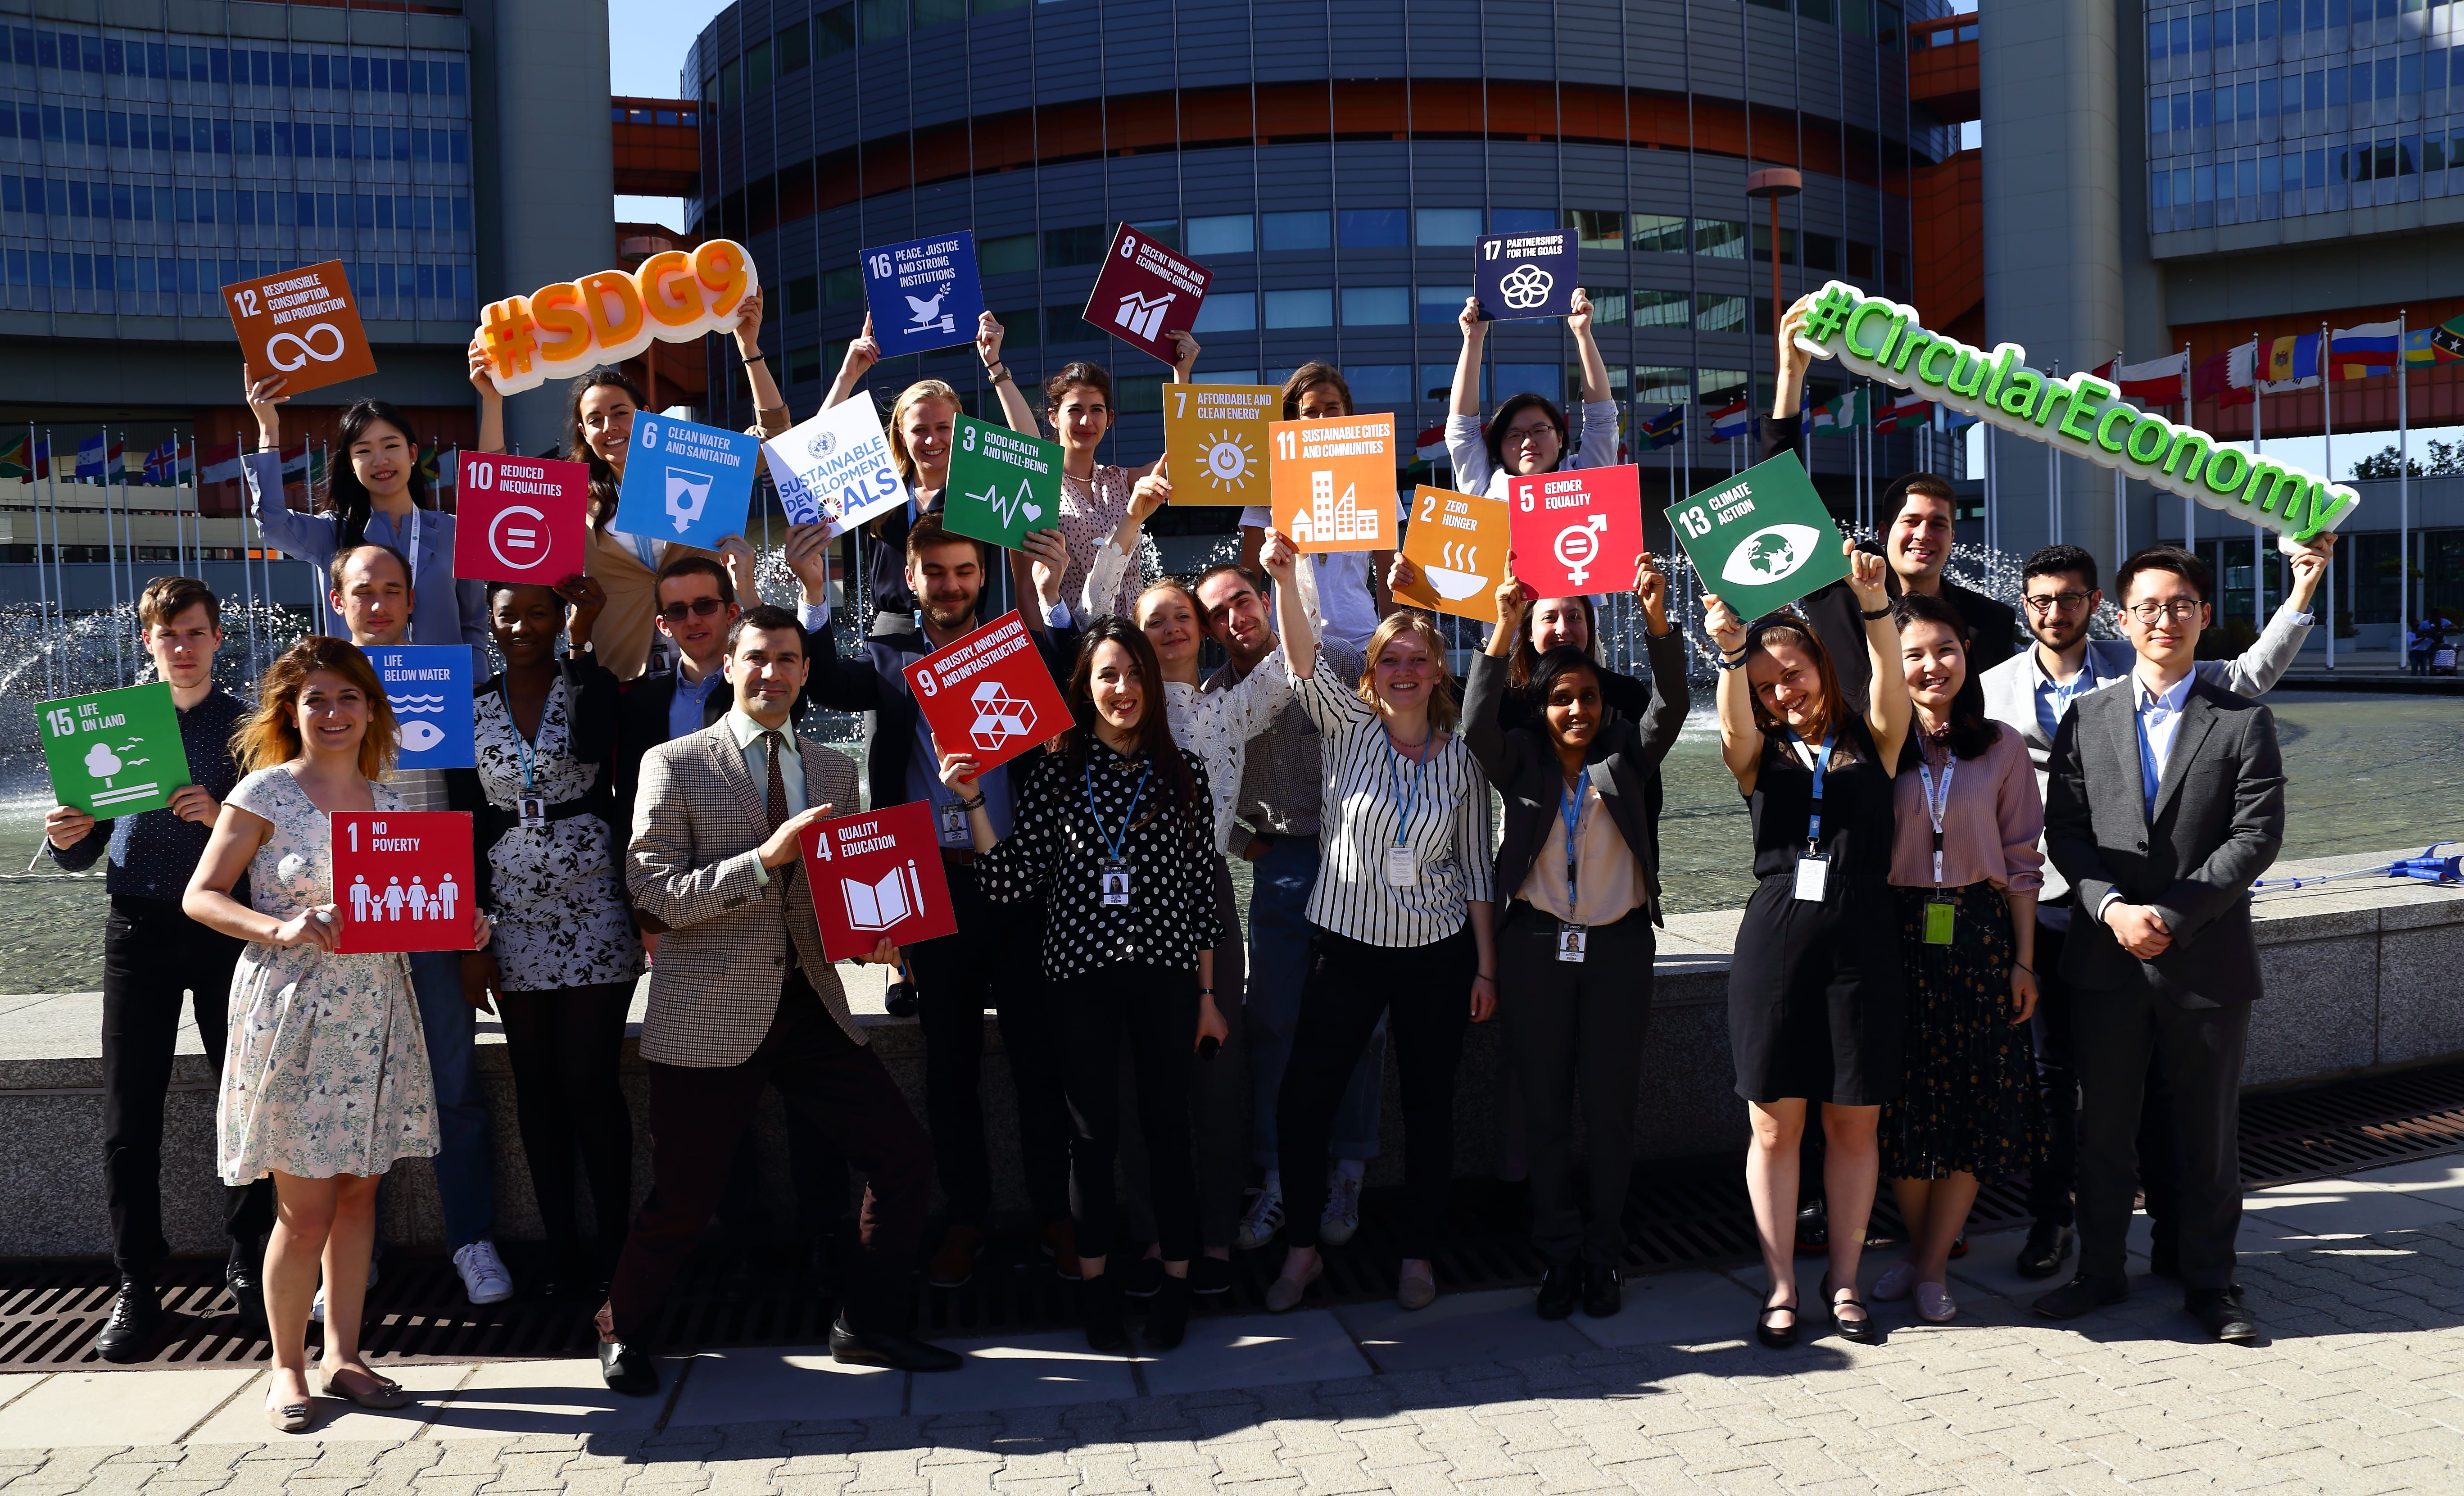 United Nations Industrial Development Organization (UNIDO's) Internship Programme 2018 for young people